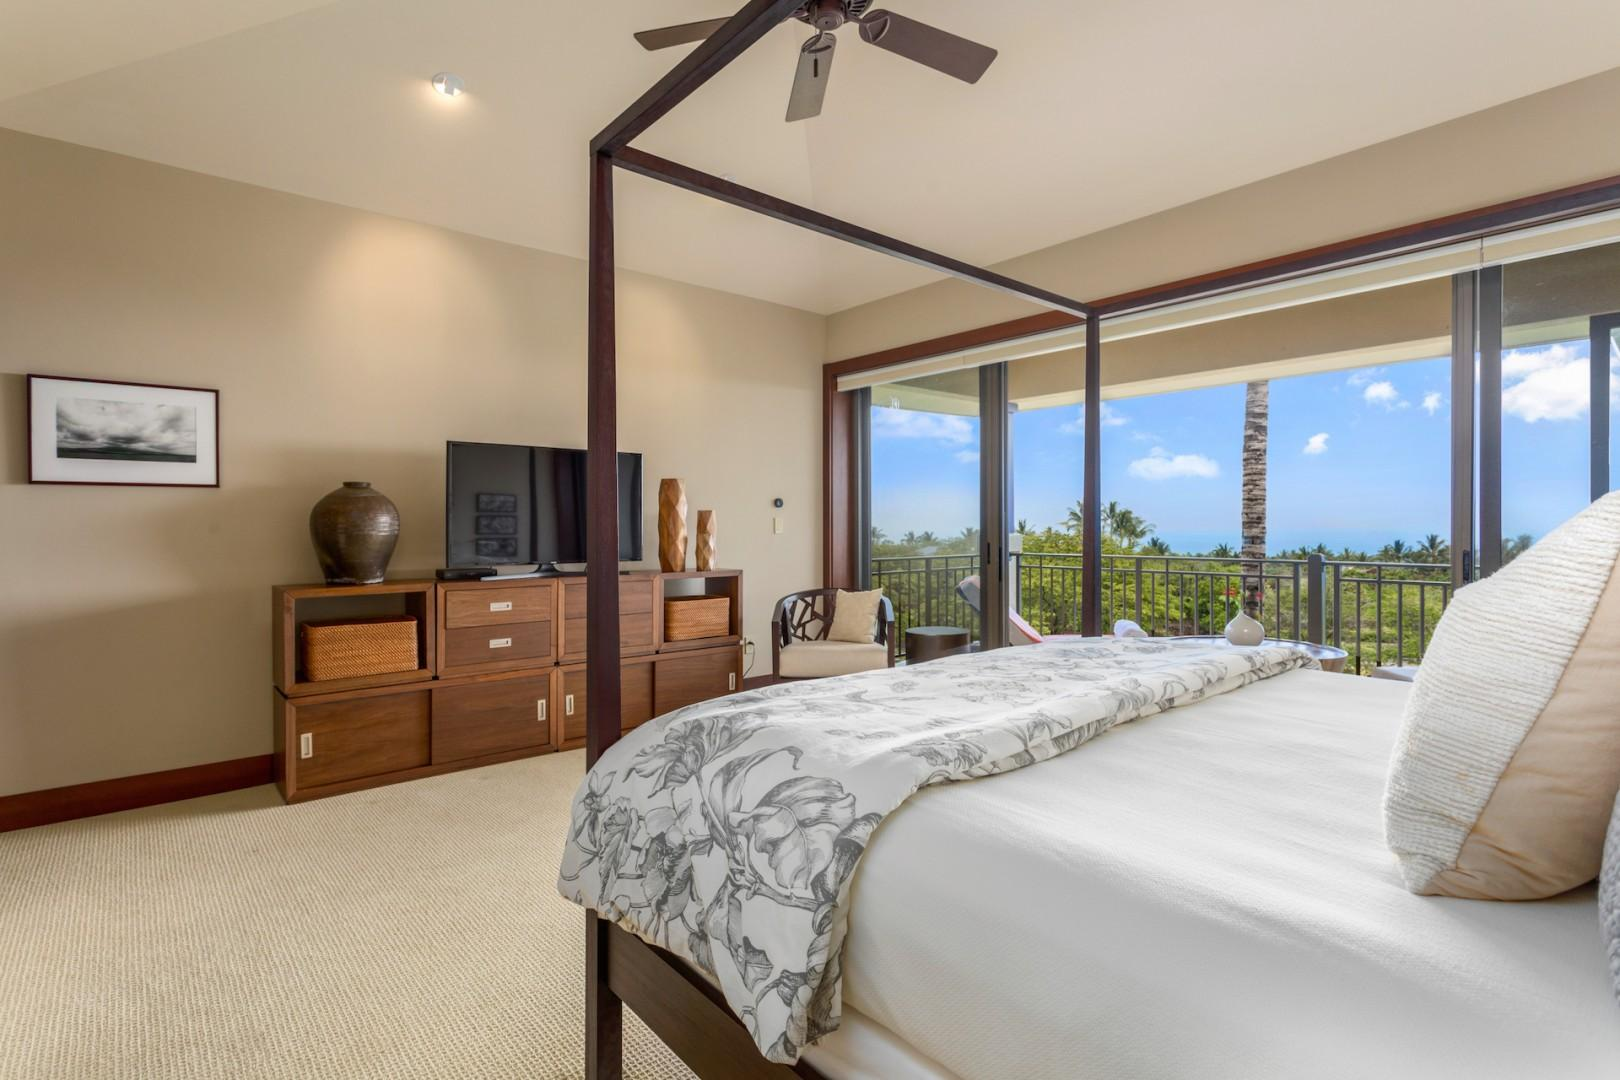 Blue skies and ocean views from the decadent king-sized master bed.